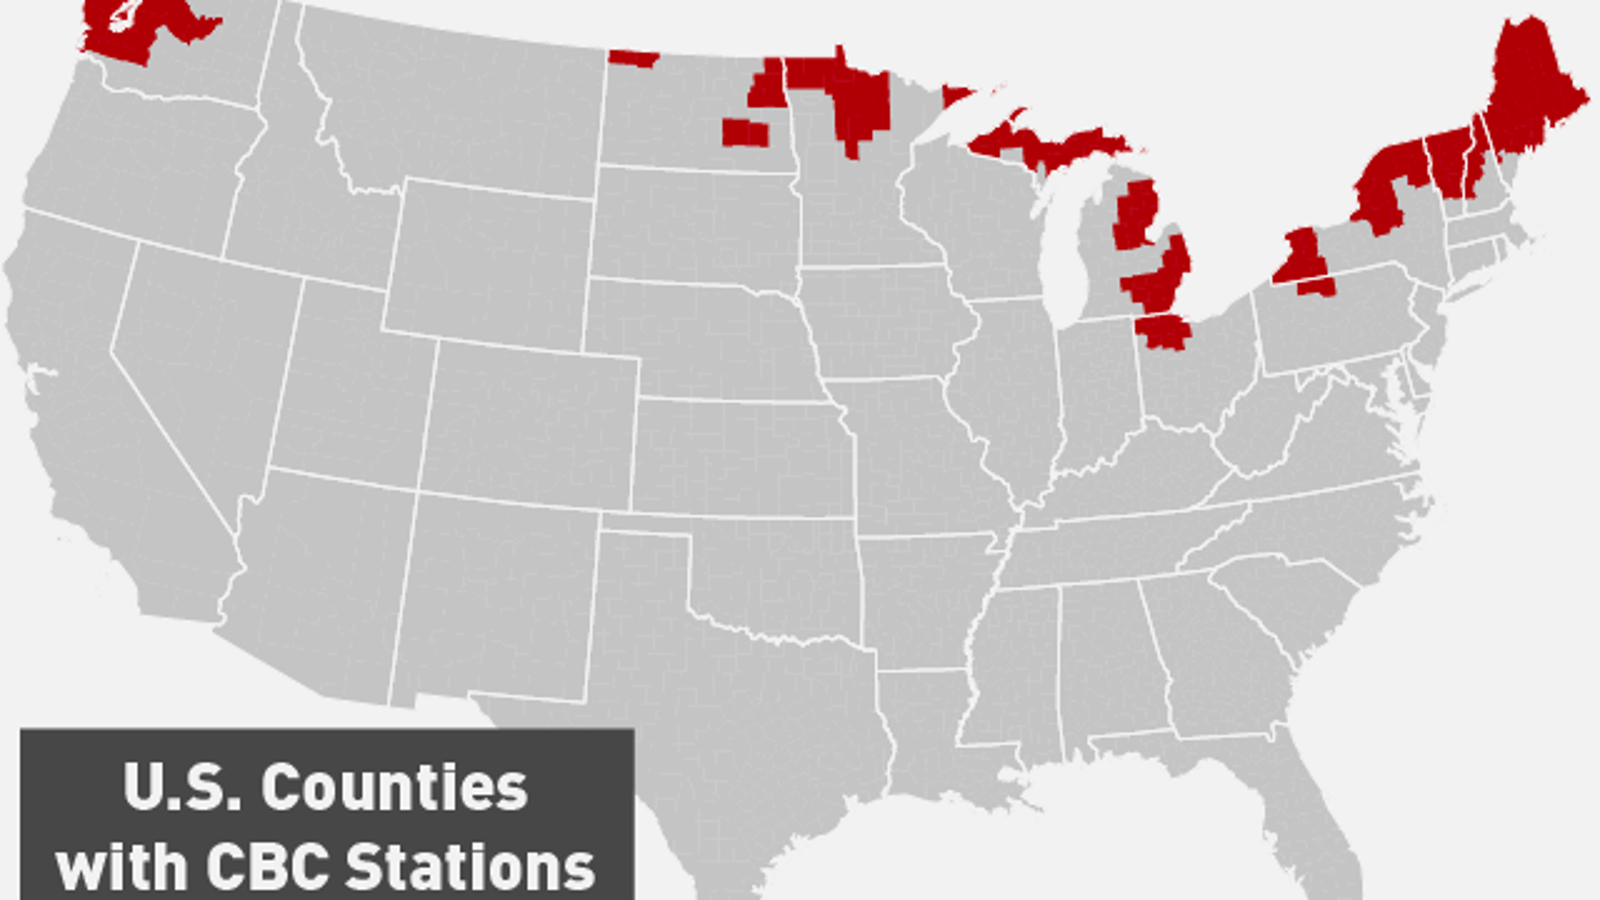 Cbc Map on